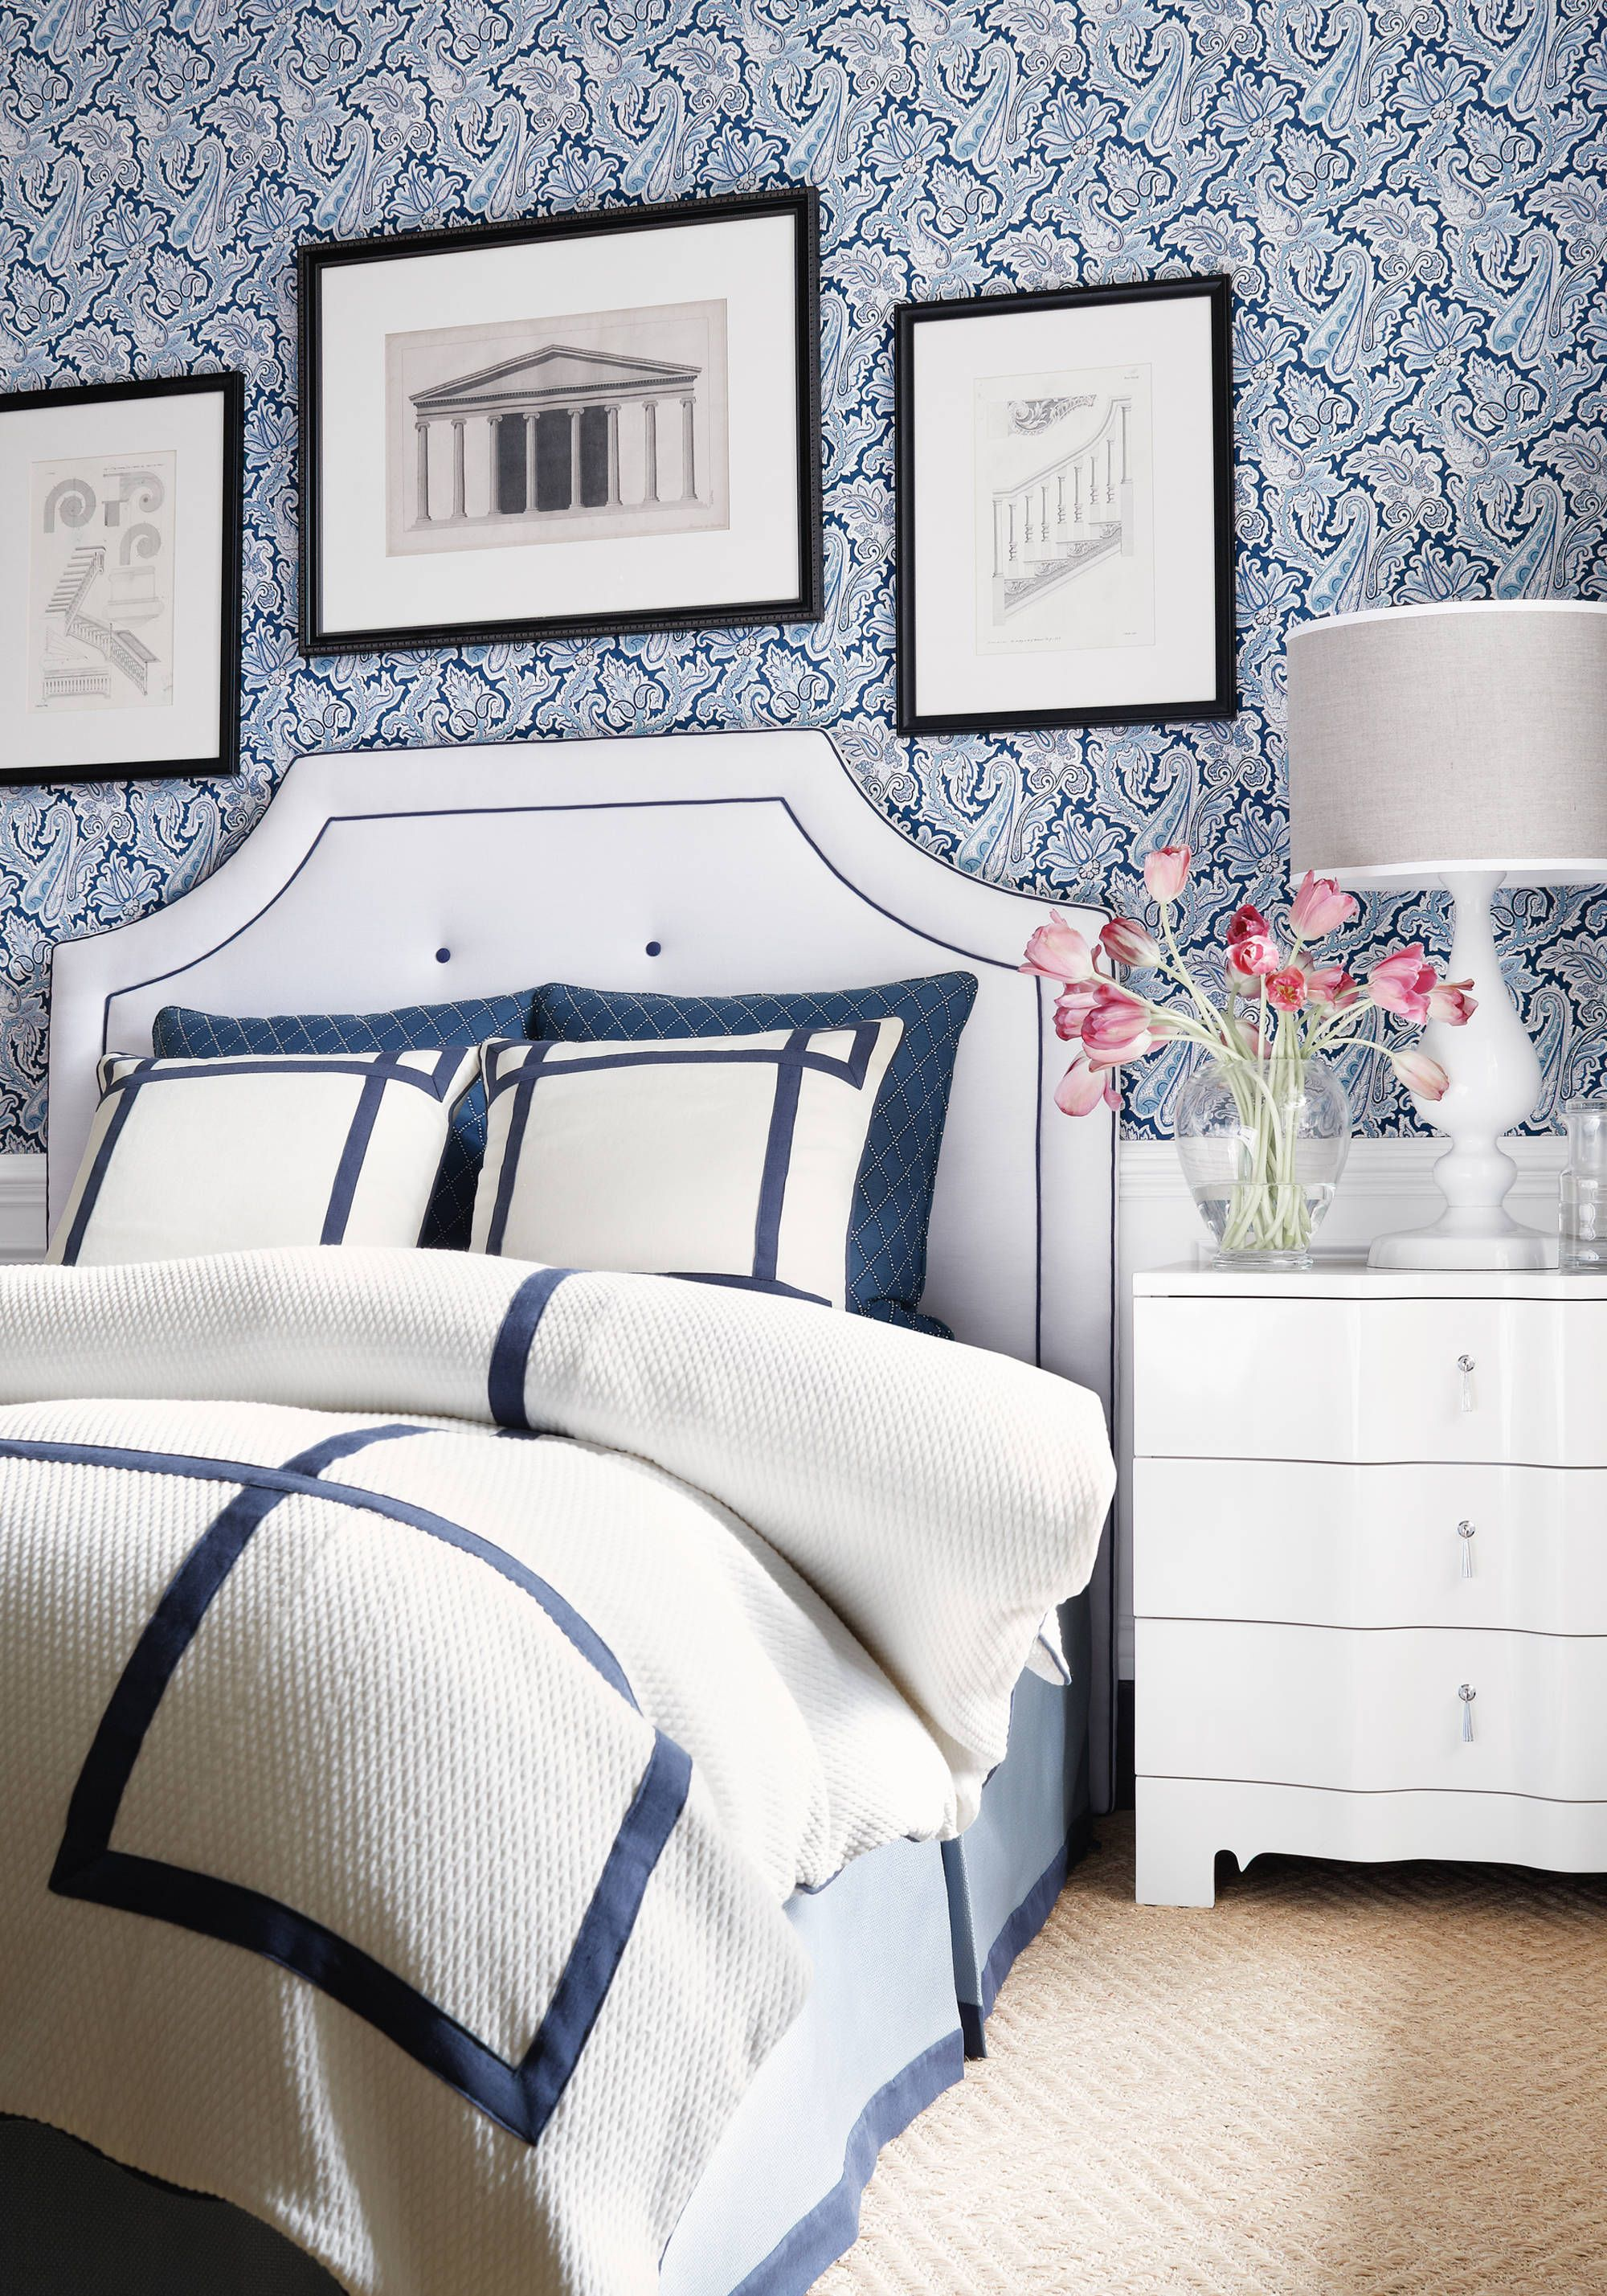 Ridgewood Headboard From Thibaut Fine Furniture In Strathmore Linen Fabric  In Snowflake From Essentials Linens